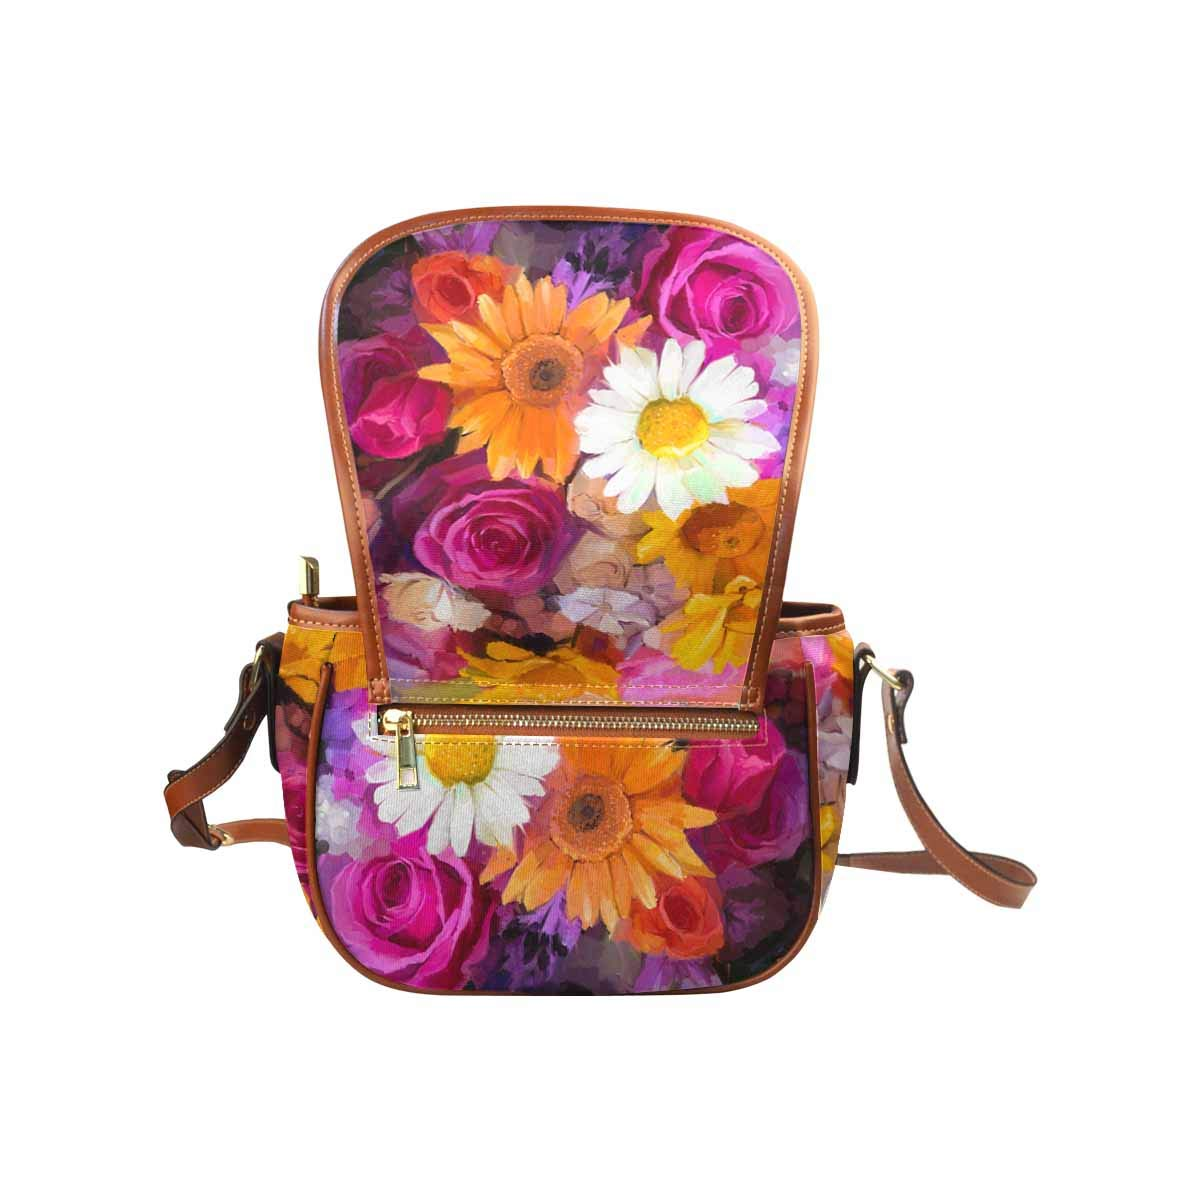 InterestPrint a Bouquet of Rose,Daisy Womens Saddle Shoulder Bag Crossbody Sling Bag Travel Shopping Satchel